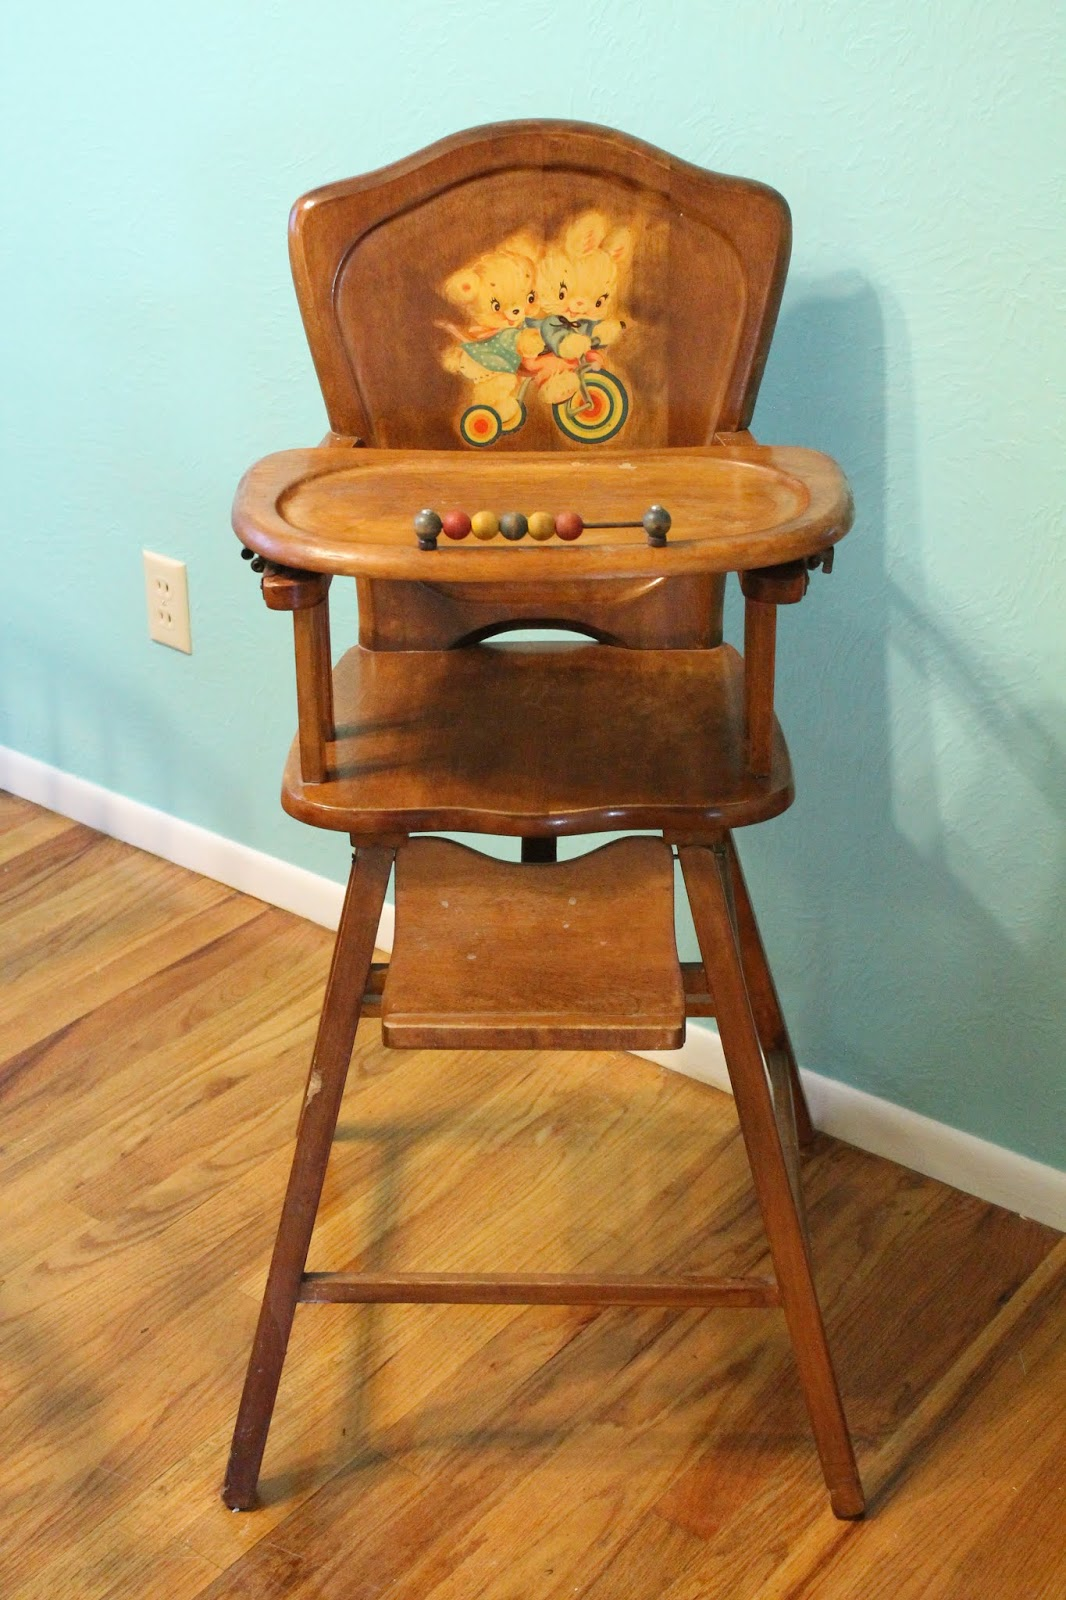 Formerly Modern Vintage Wooden High Chair